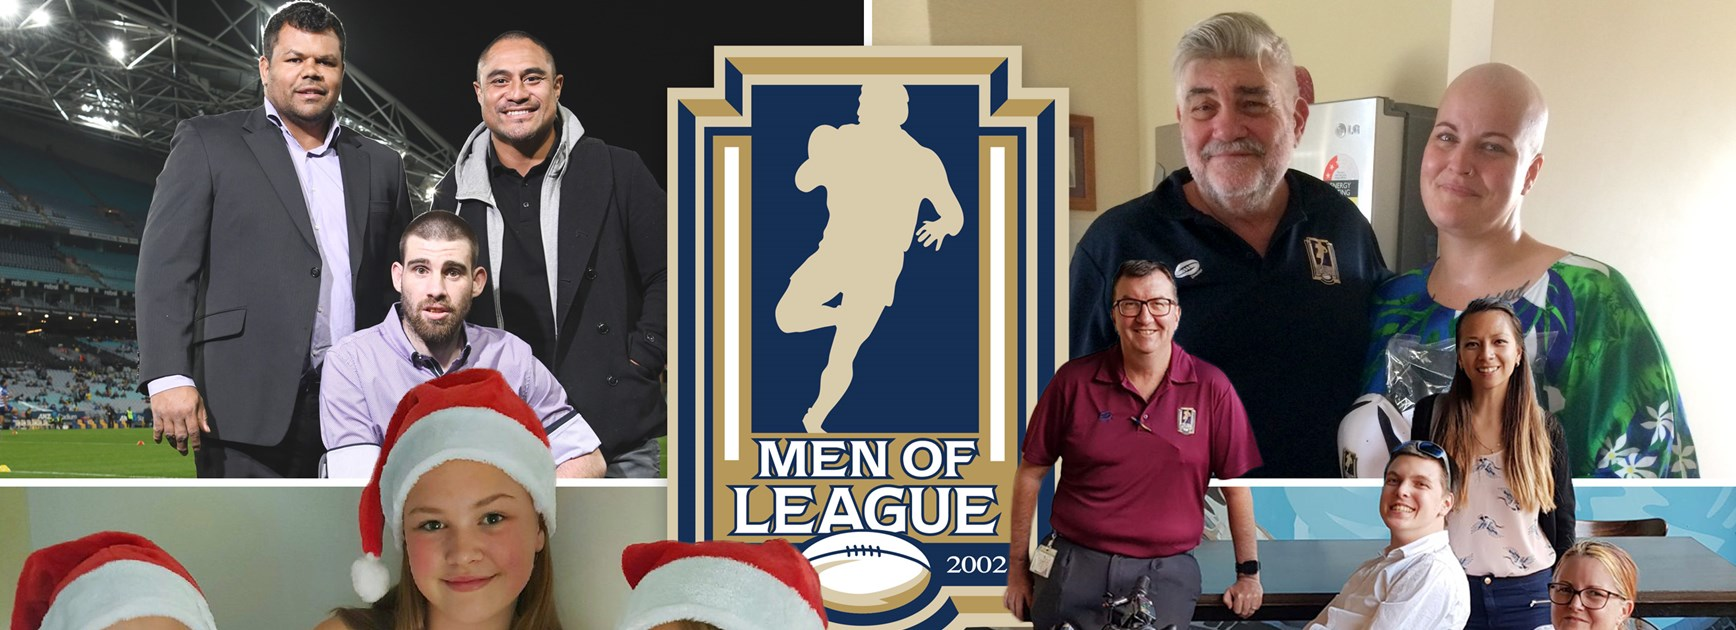 The Men of League Foundation continues to change lives